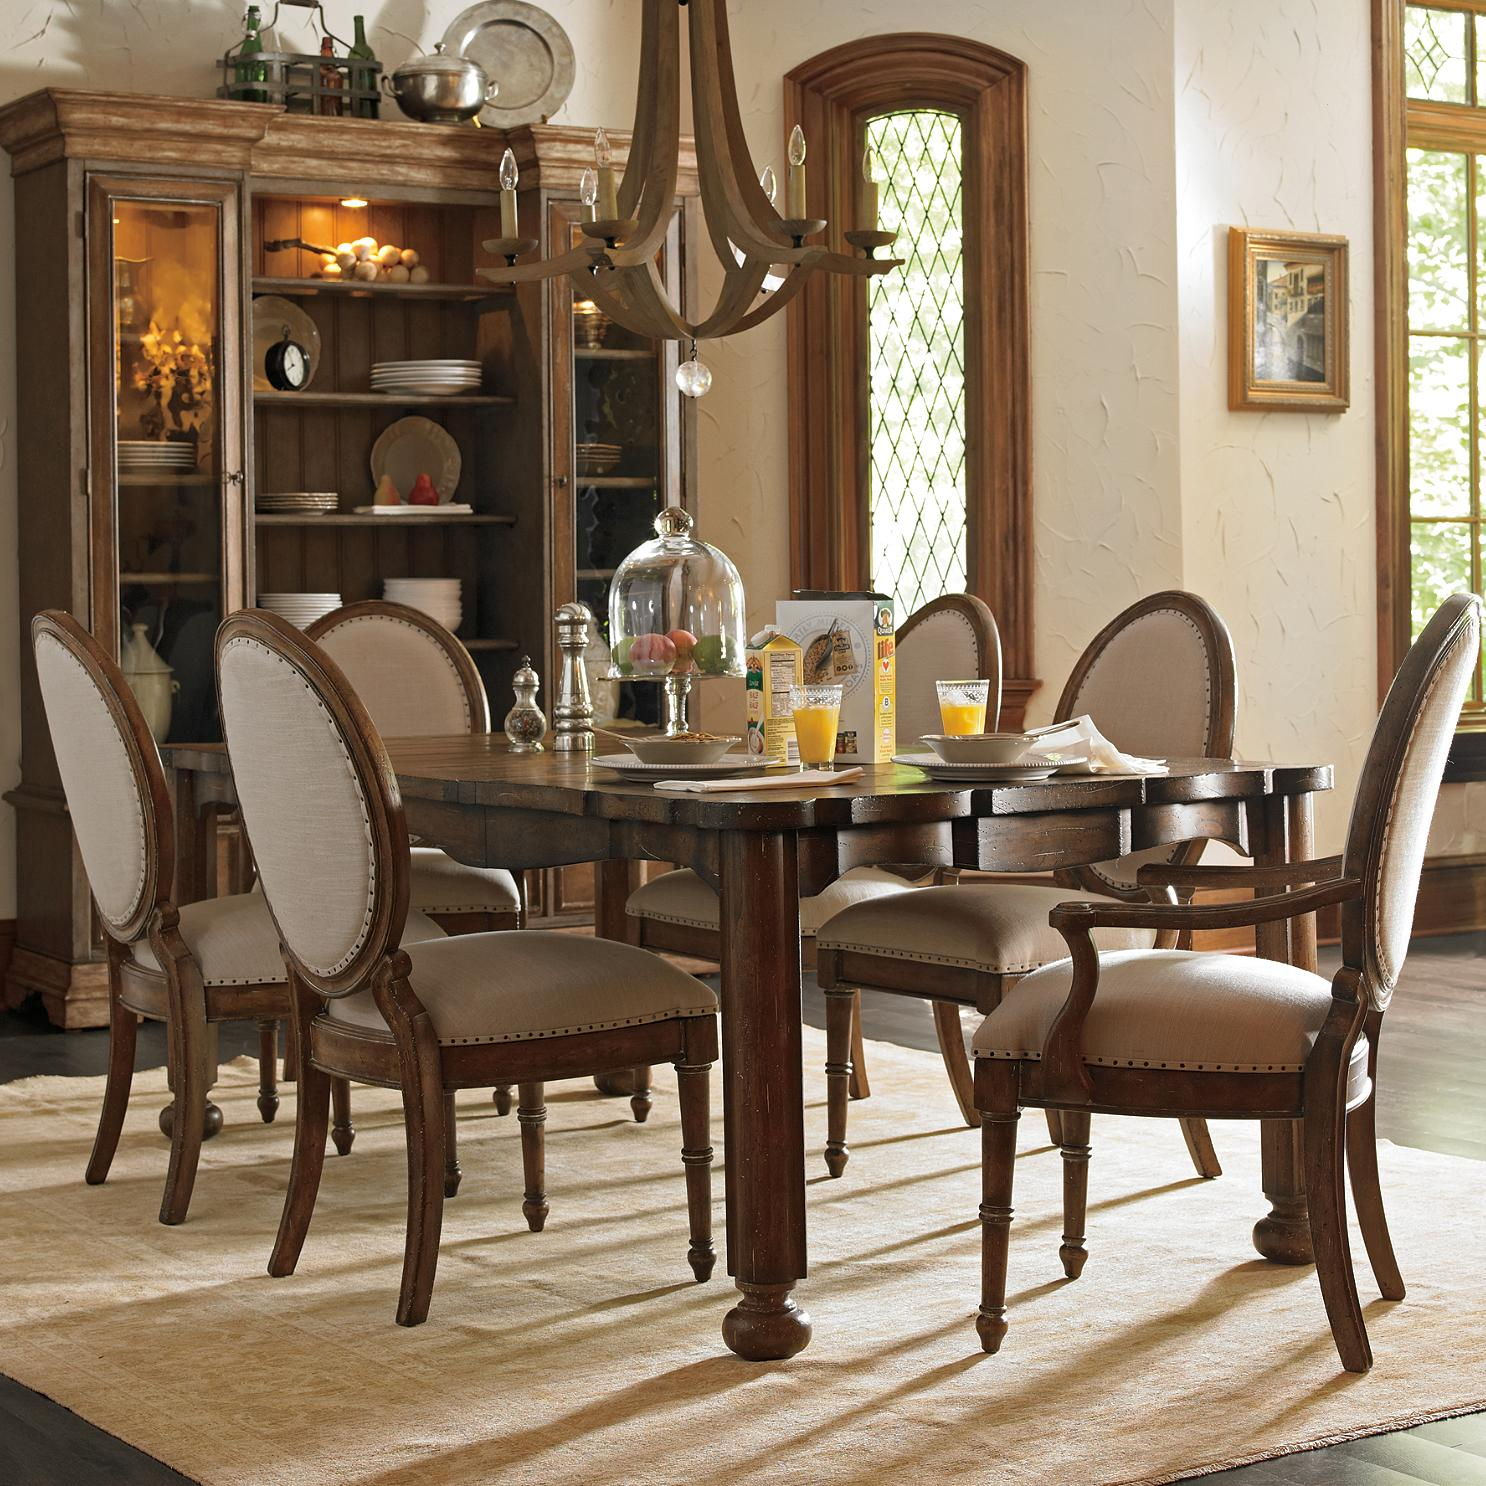 Baer's Furnishing: Create a European Farmhouse Dining Room